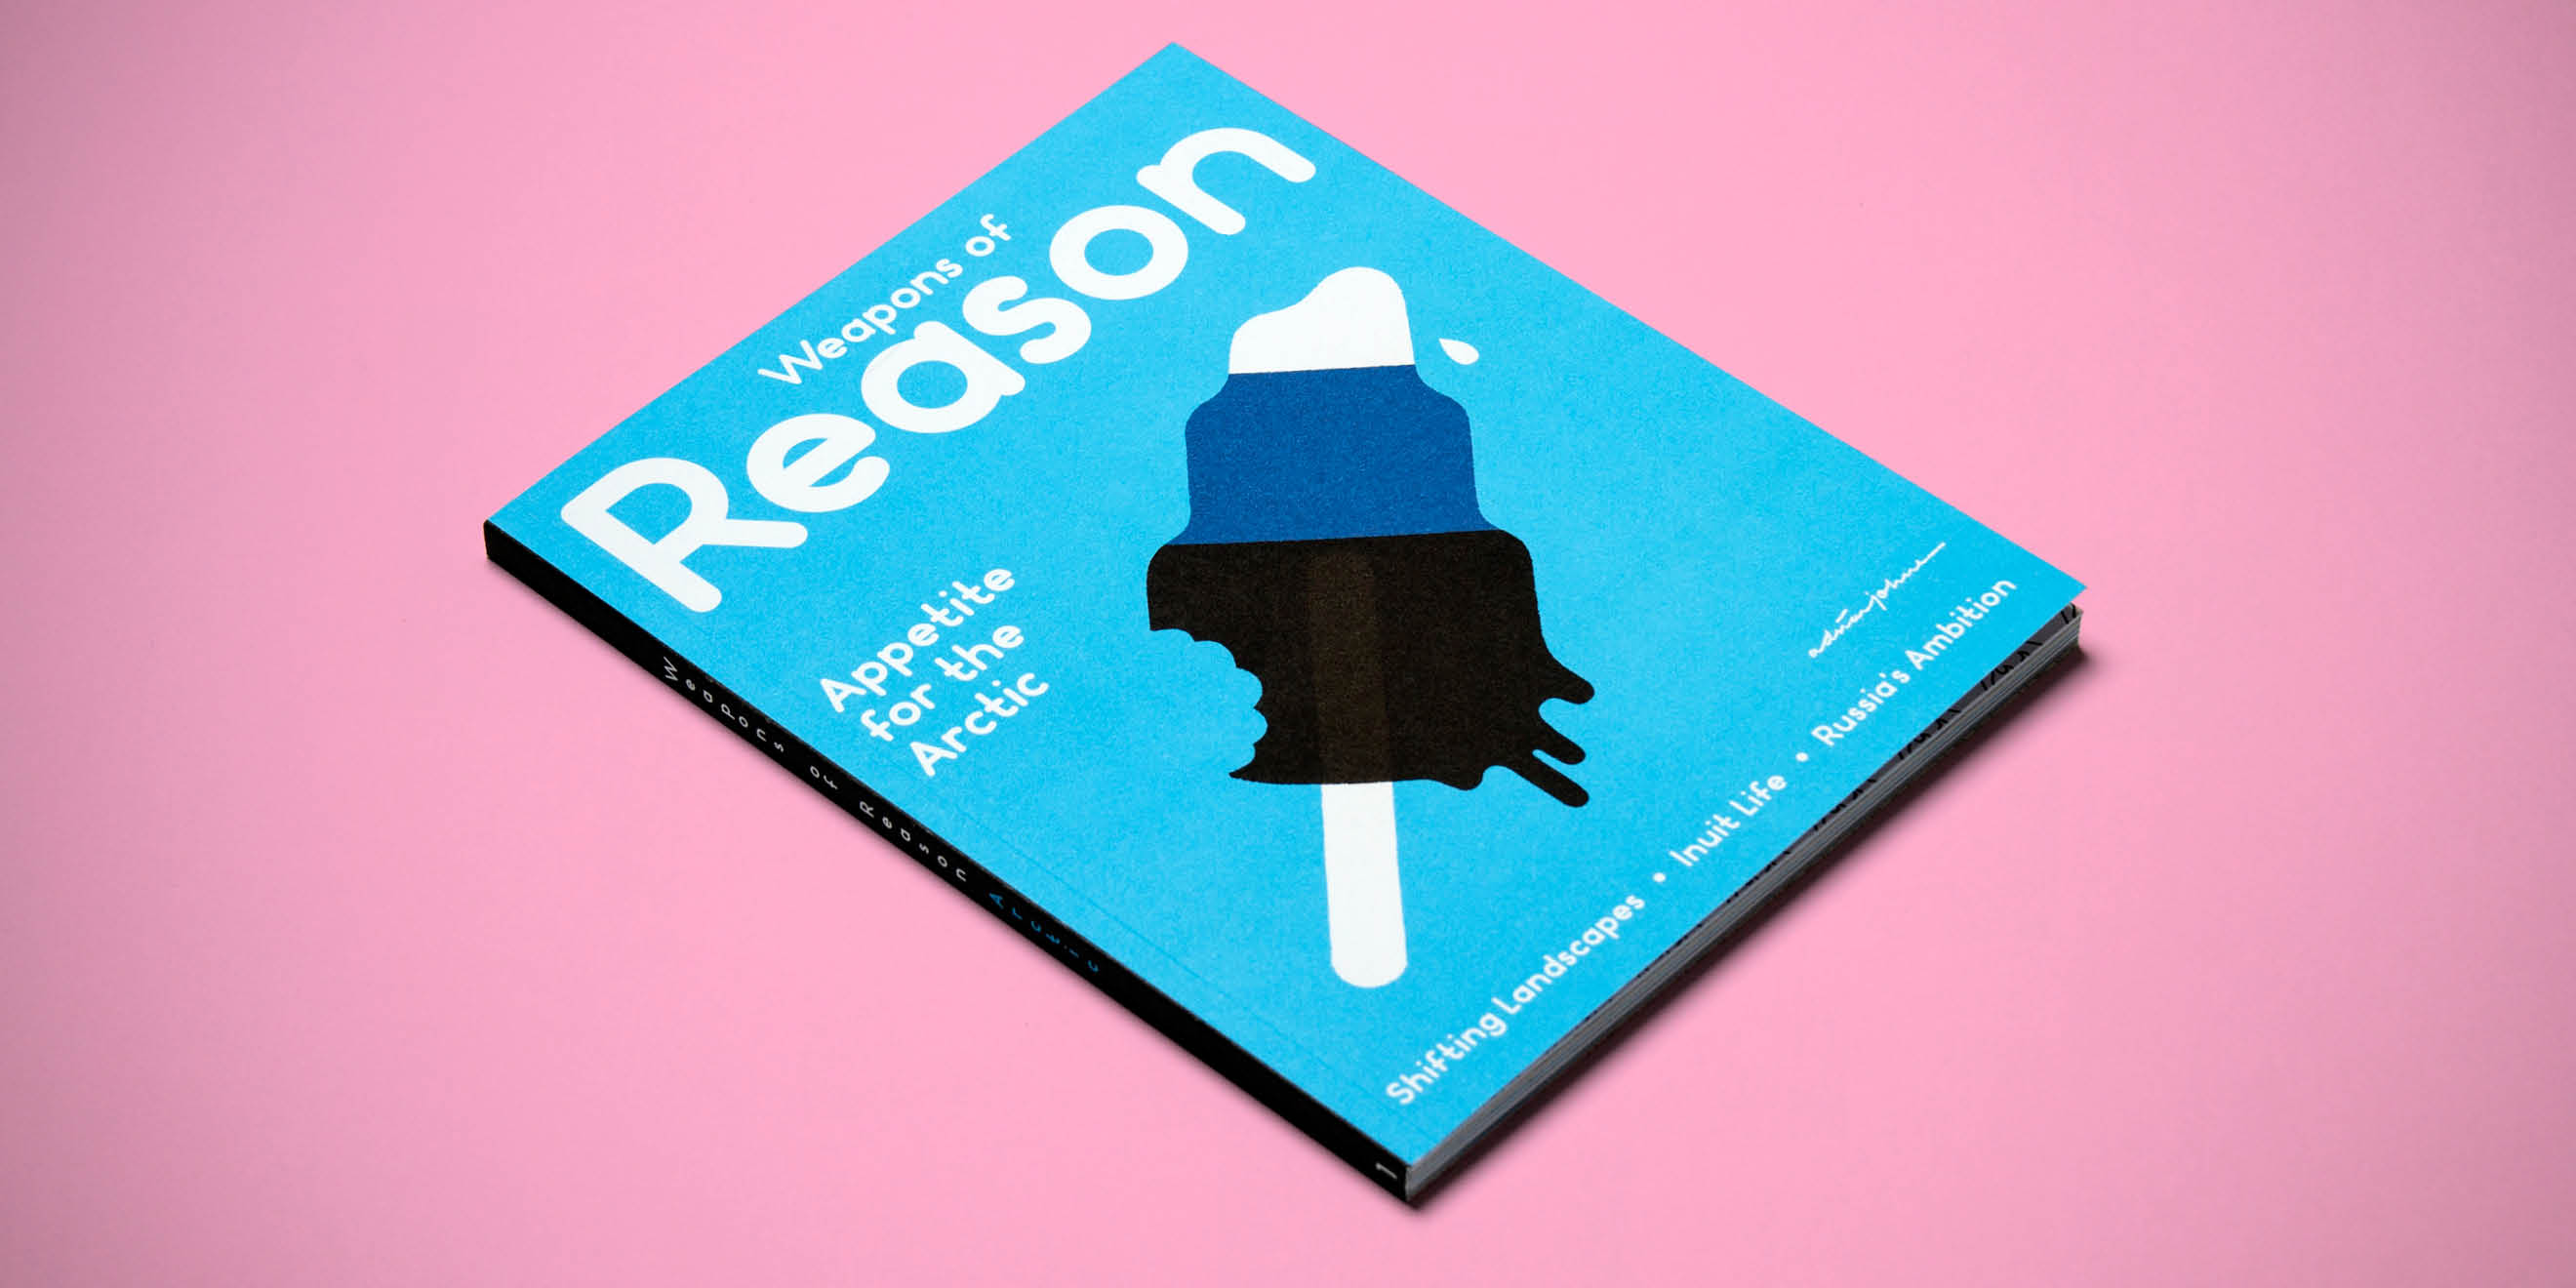 Weapons of Reason: The Arctic - the first issue of the self initiated magazine by Human After All design agency